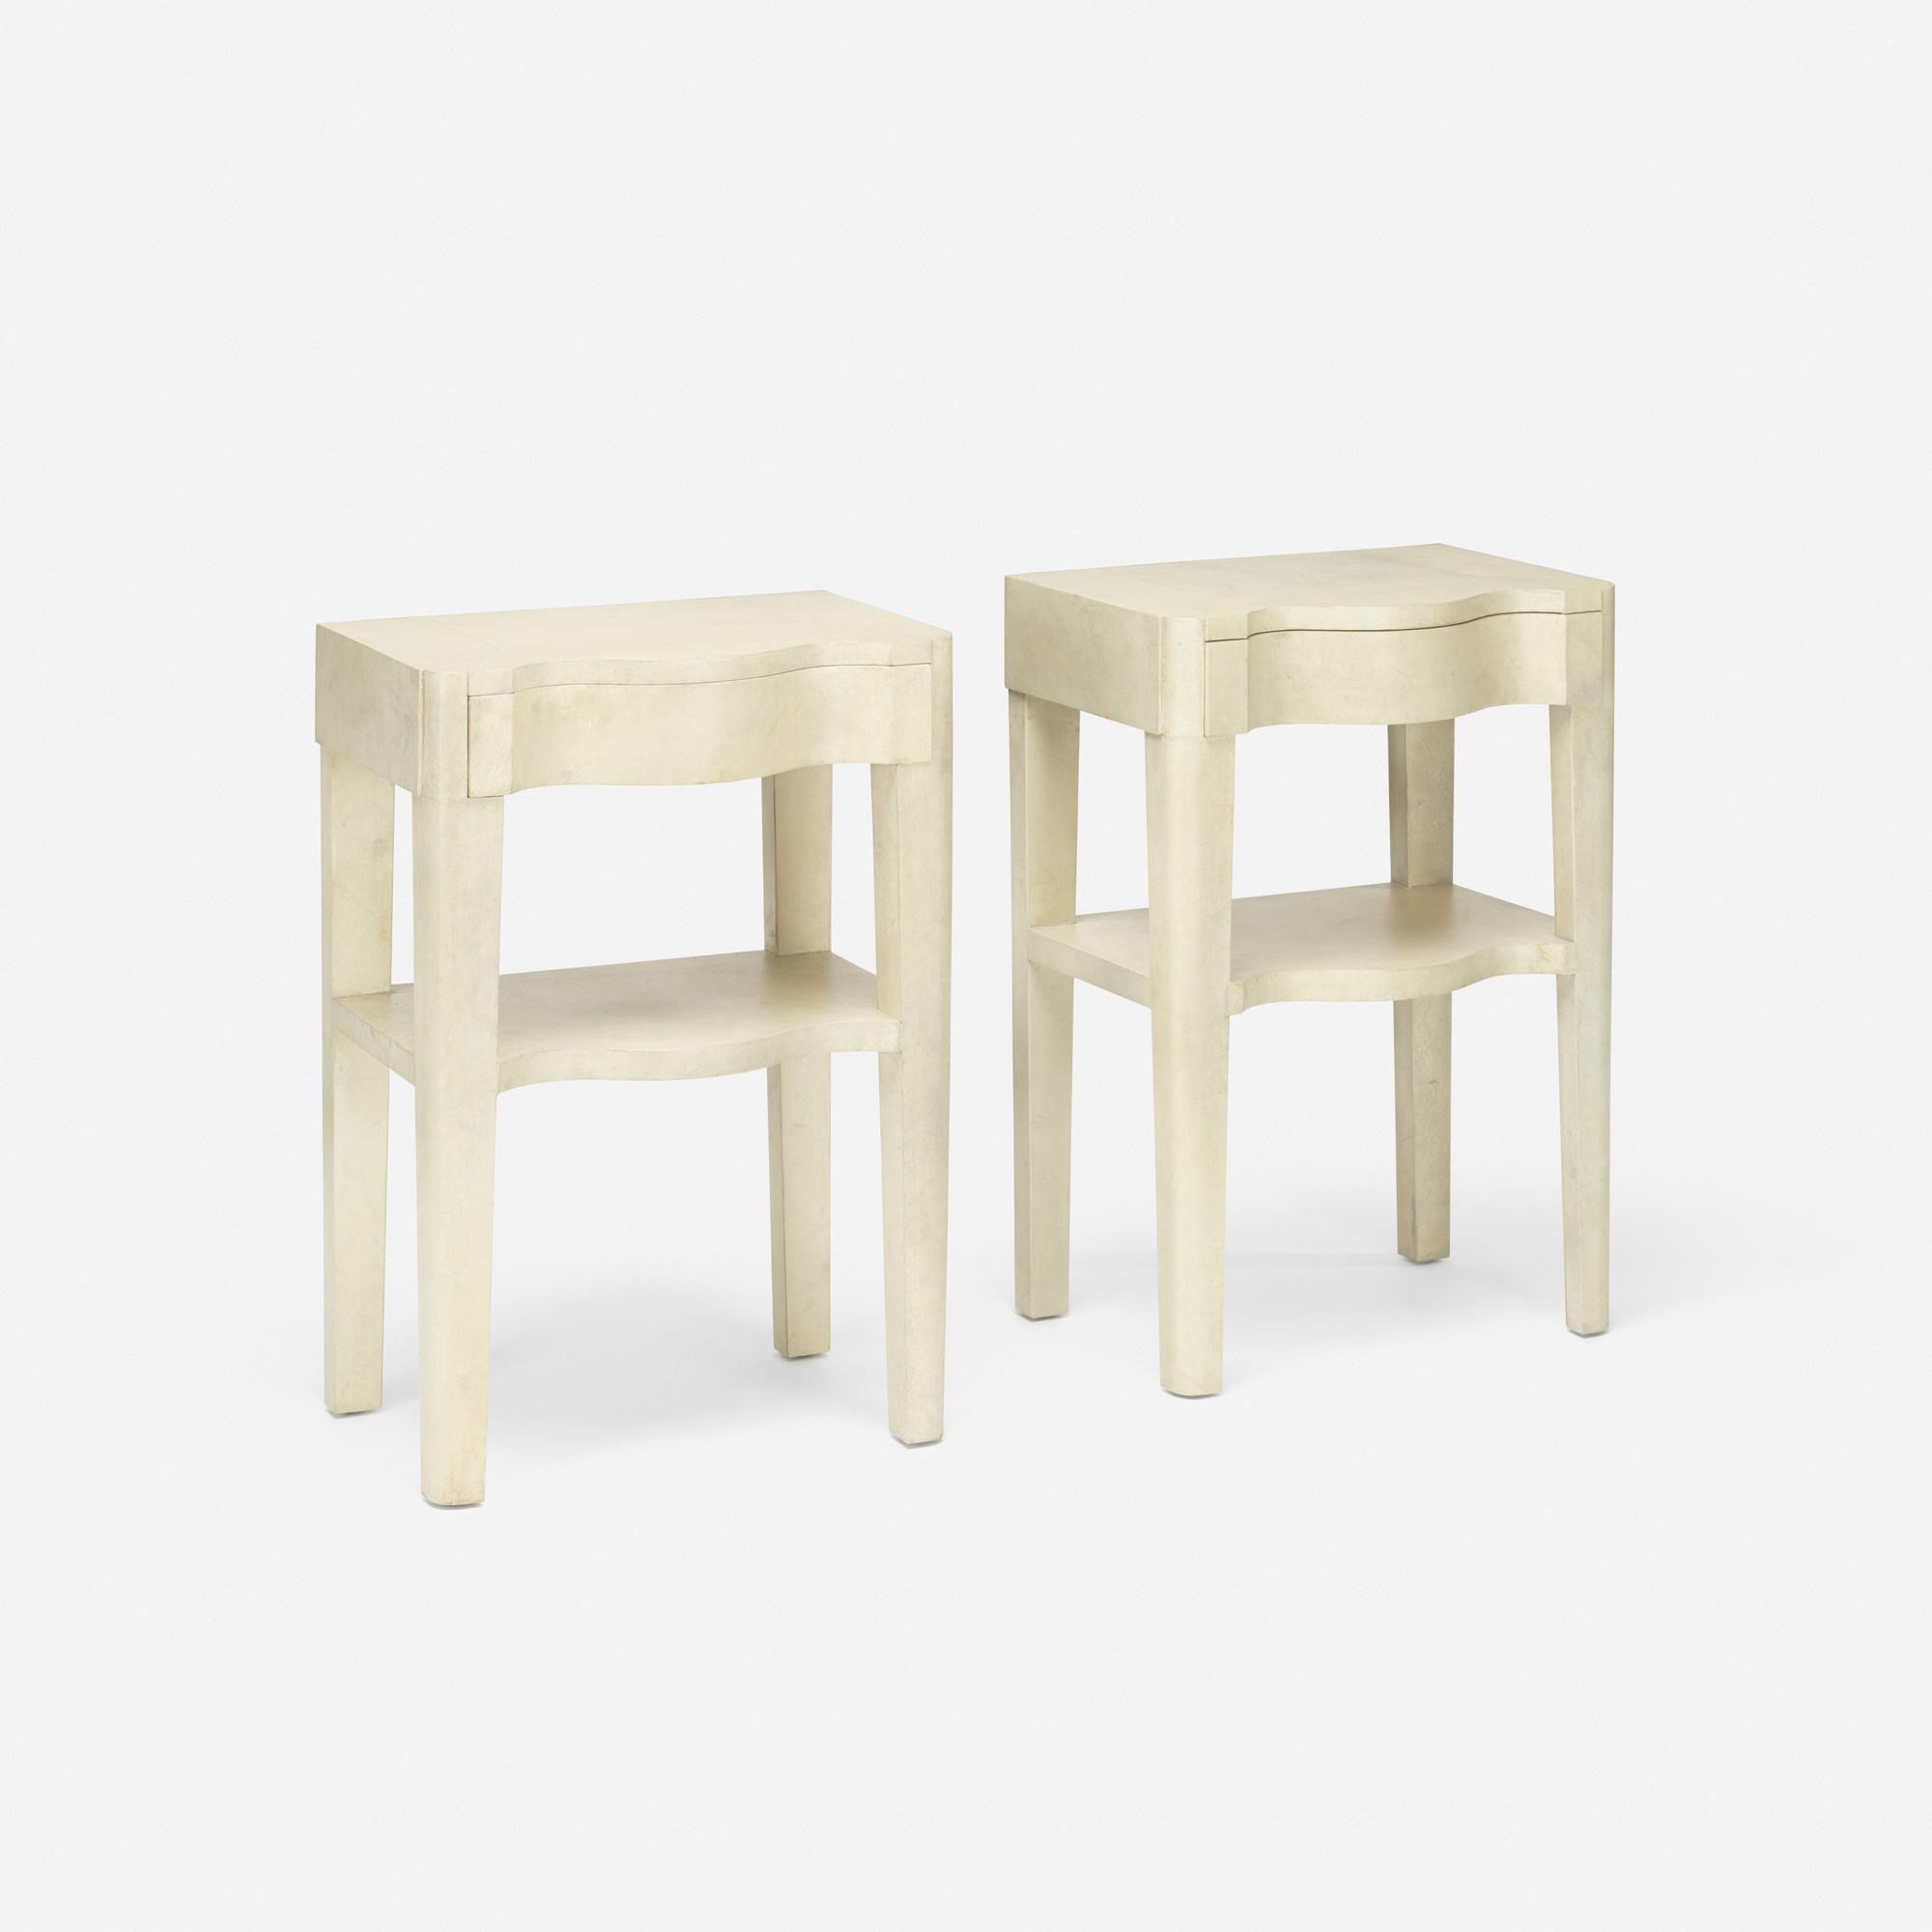 377: Samuel Marx / nightstands, pair (1 of 2)